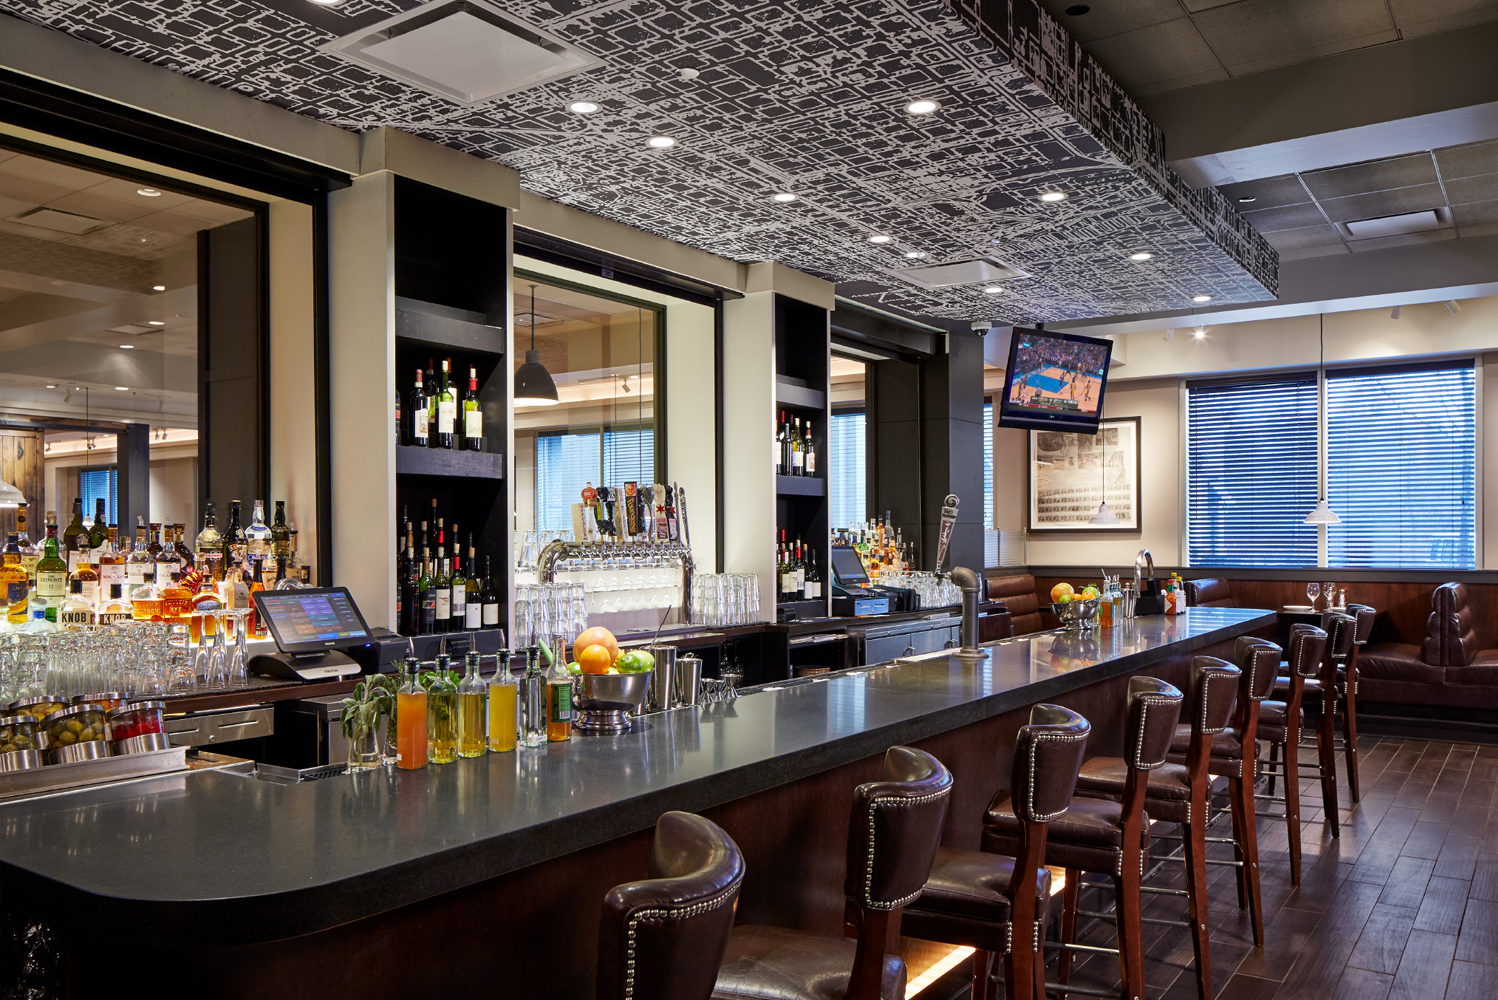 Inspired by Chicago's first airport, Ashburn Flying Field, The Ashburn restaurant celebrates the heritage and tradition of aviation.